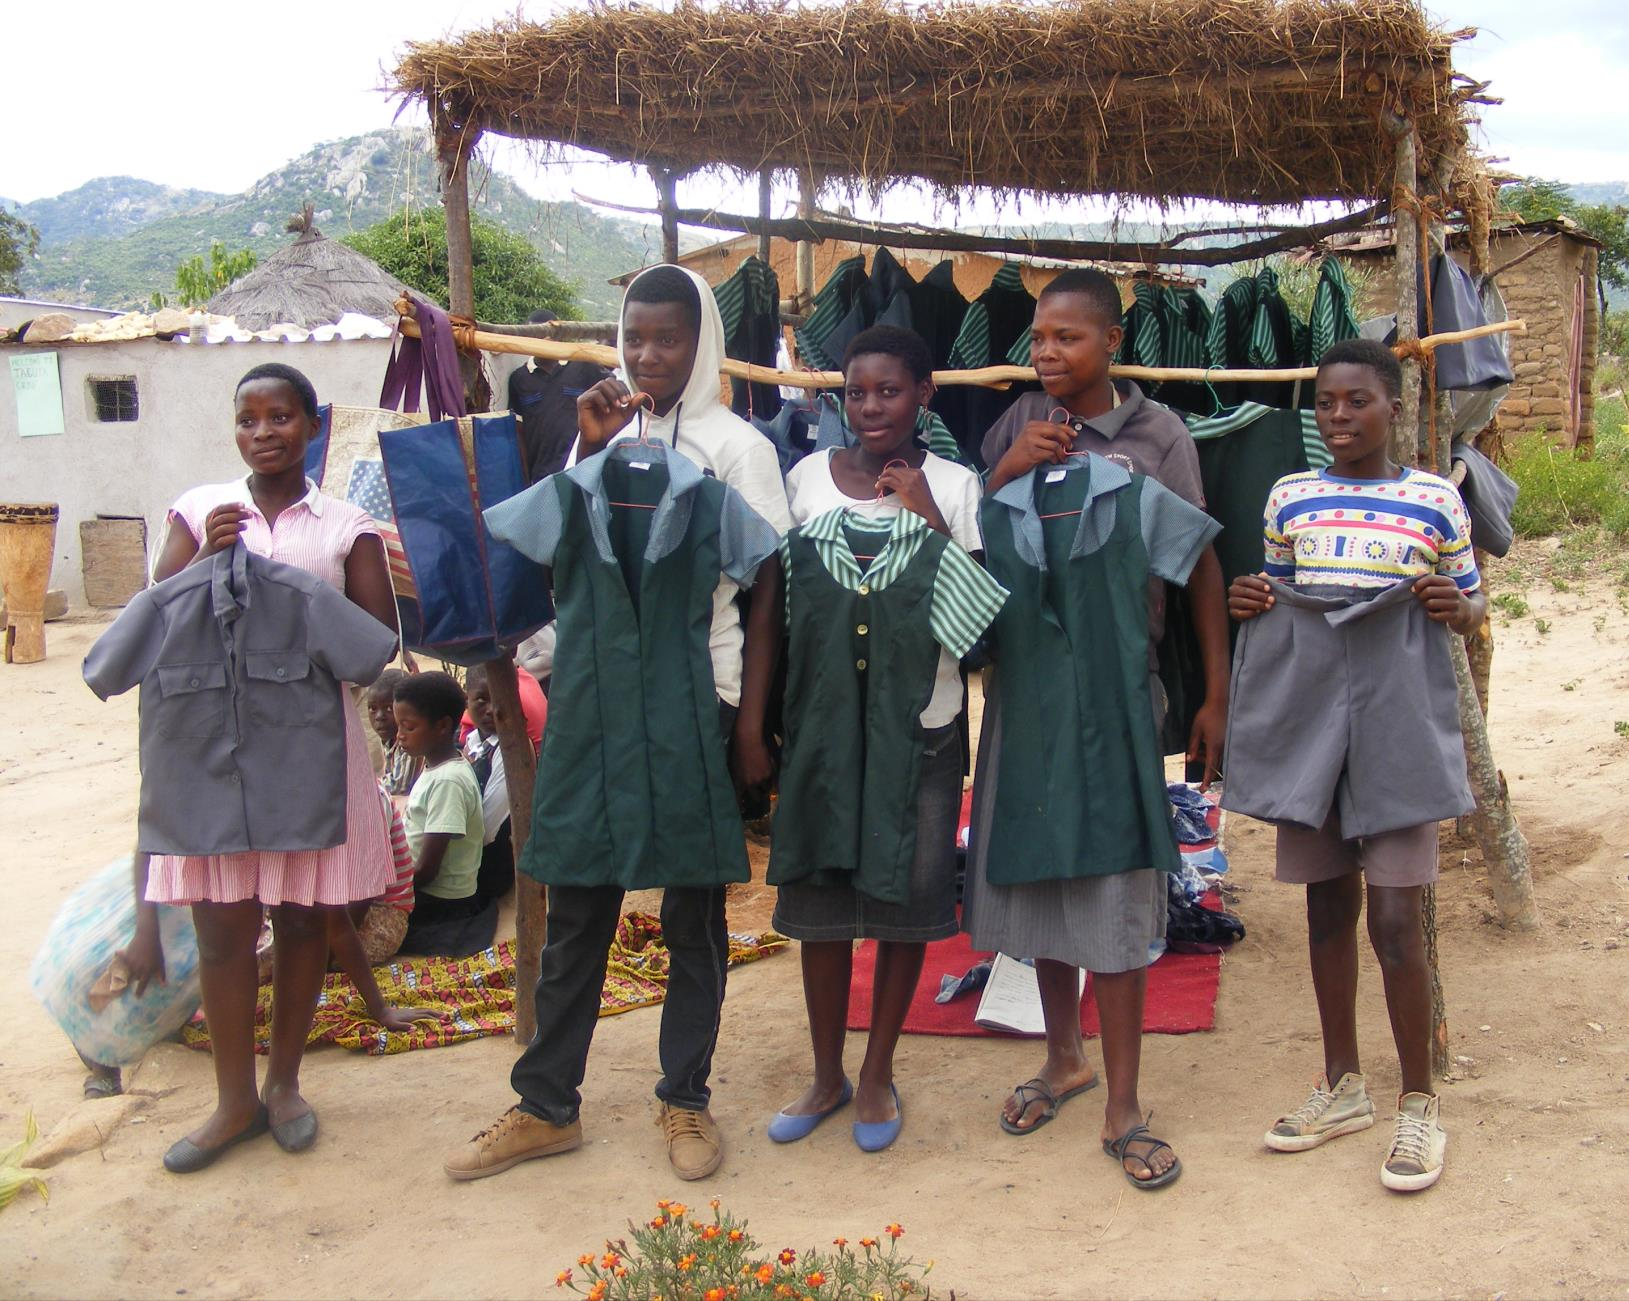 photo of teenagers holding uniforms